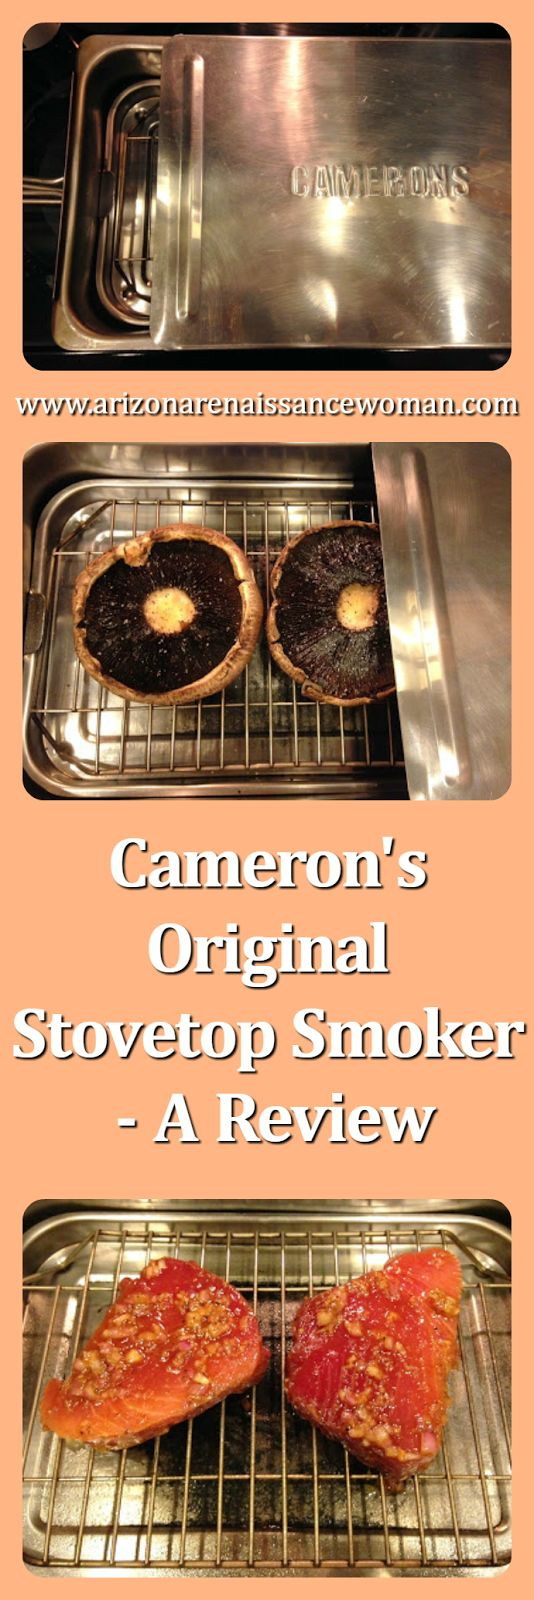 http://www.arizonarenaissancewoman.com/2016/04/camerons-original-stovetop-smoker-review.html Cameron's Original Stovetop Smoker - A Review - I finally devoted a whole blog post to one of my favorite kitchen items!  :)